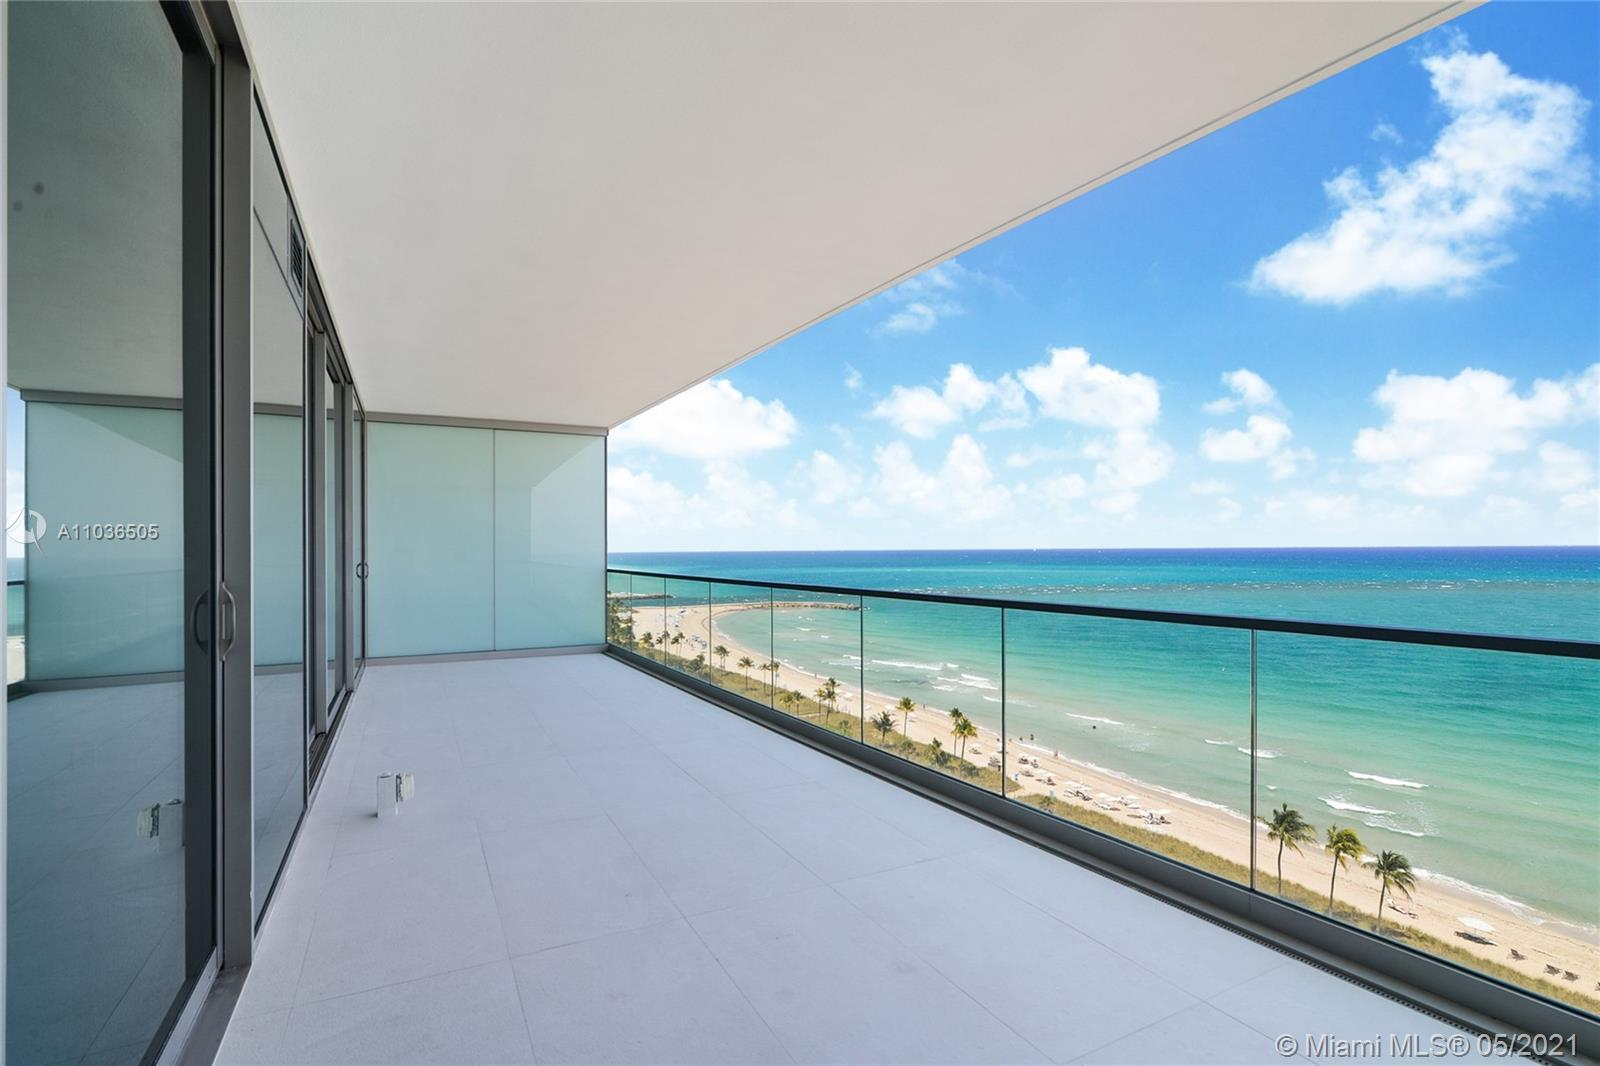 Best priced one bedroom plus den unit with direct view of the ocean, in one of a kind development. T